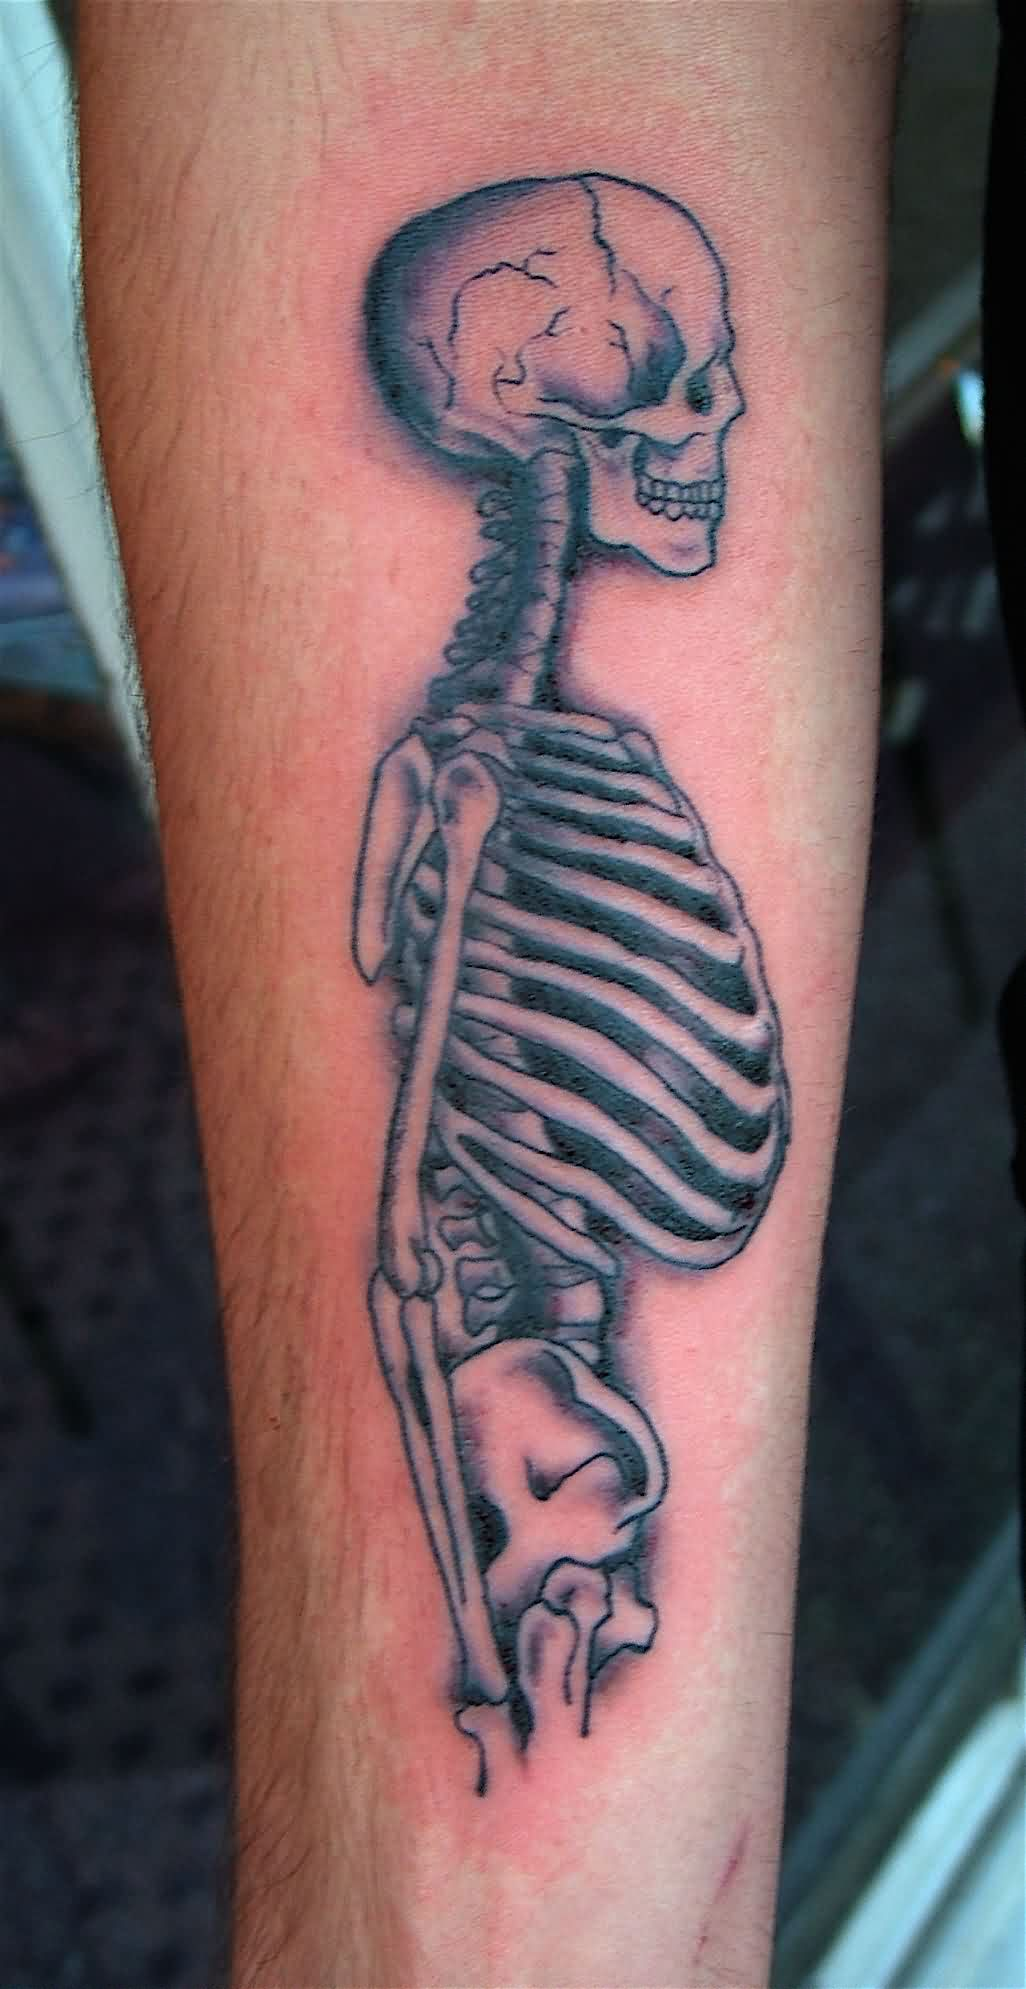 Incredible Skeleton Tattoo On Arm